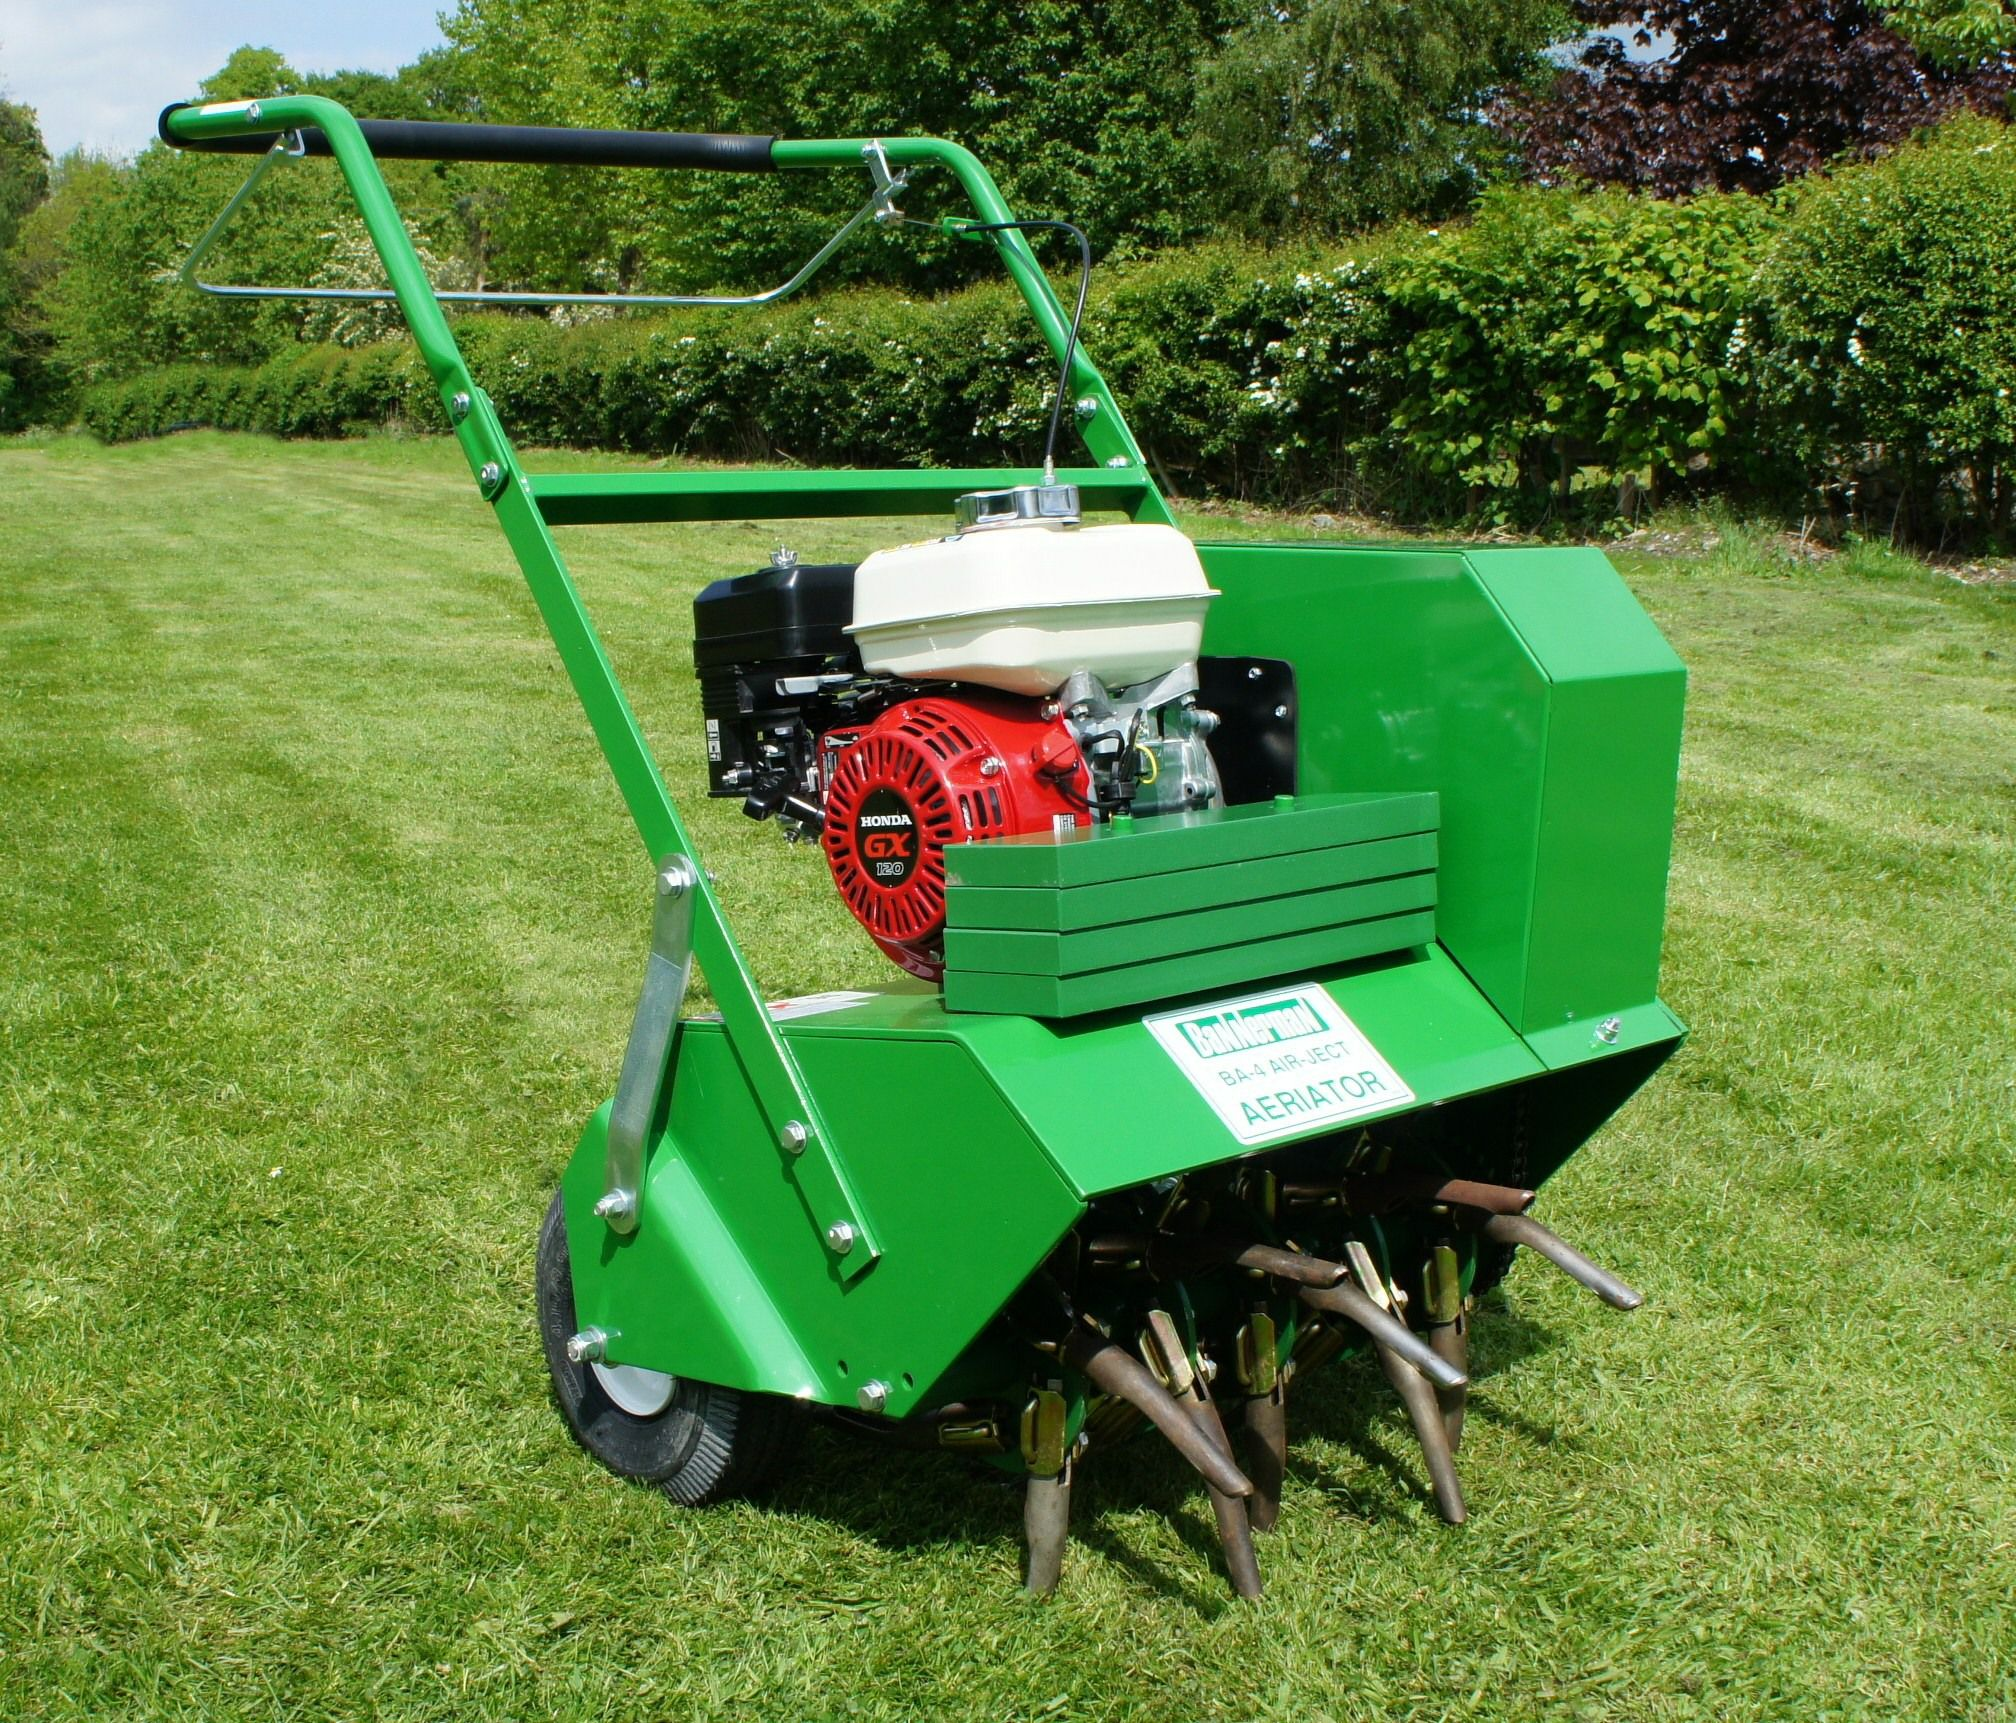 Tool And Equipment Rental Services In Usa Lawn Garden Equipment Related Companies Of